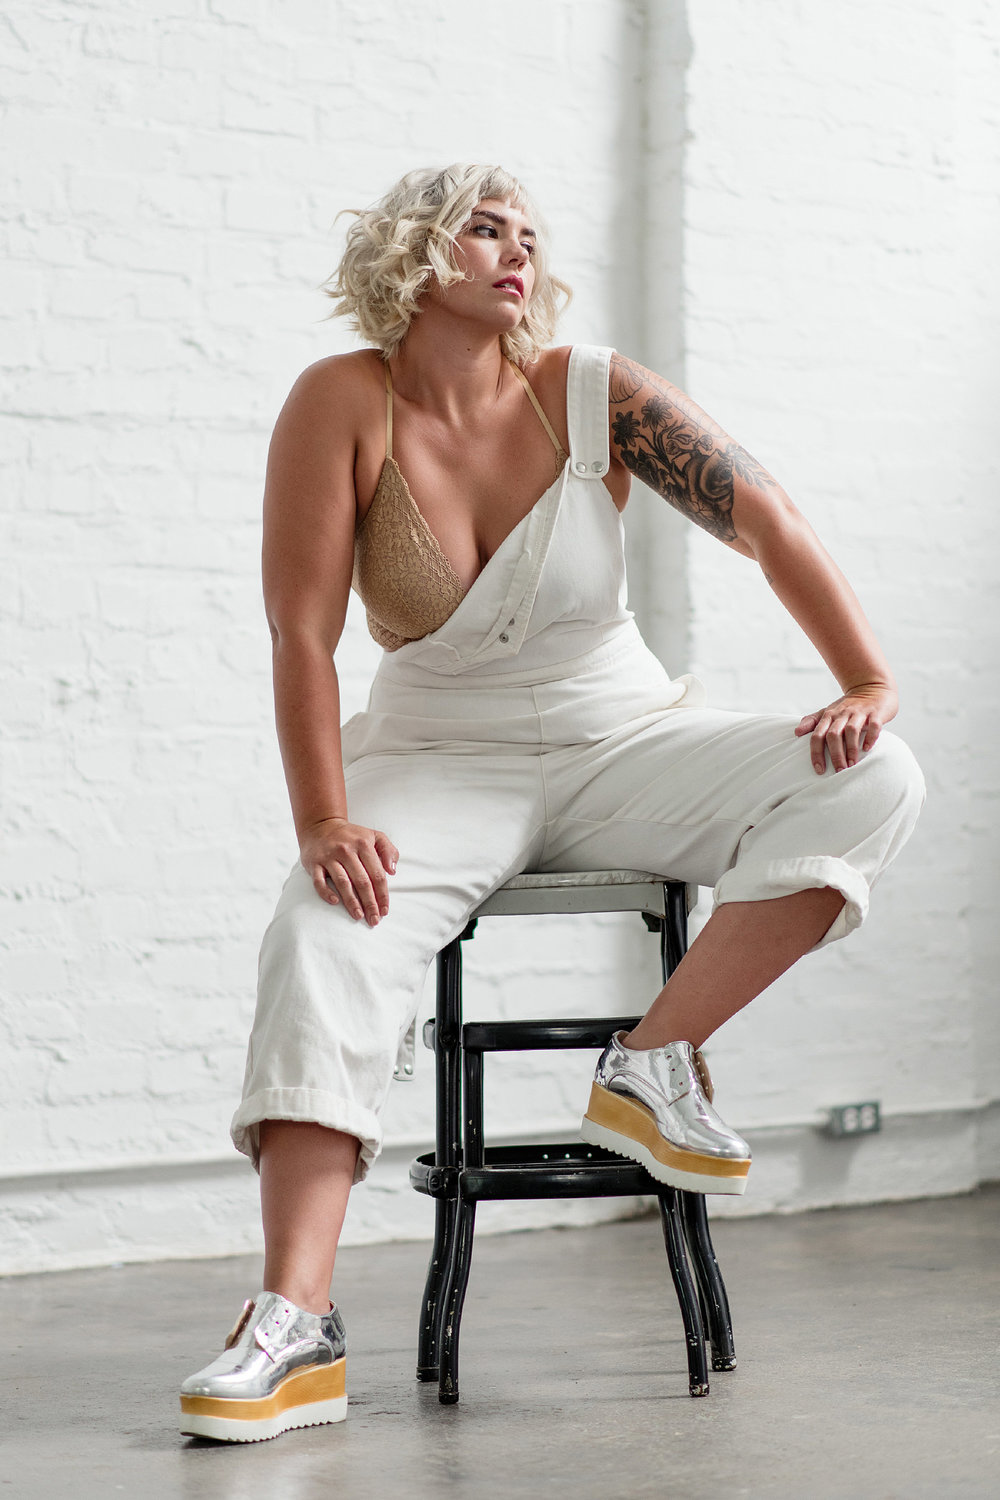 Blonde model with tattoo wearing silver oxfords sits on stool